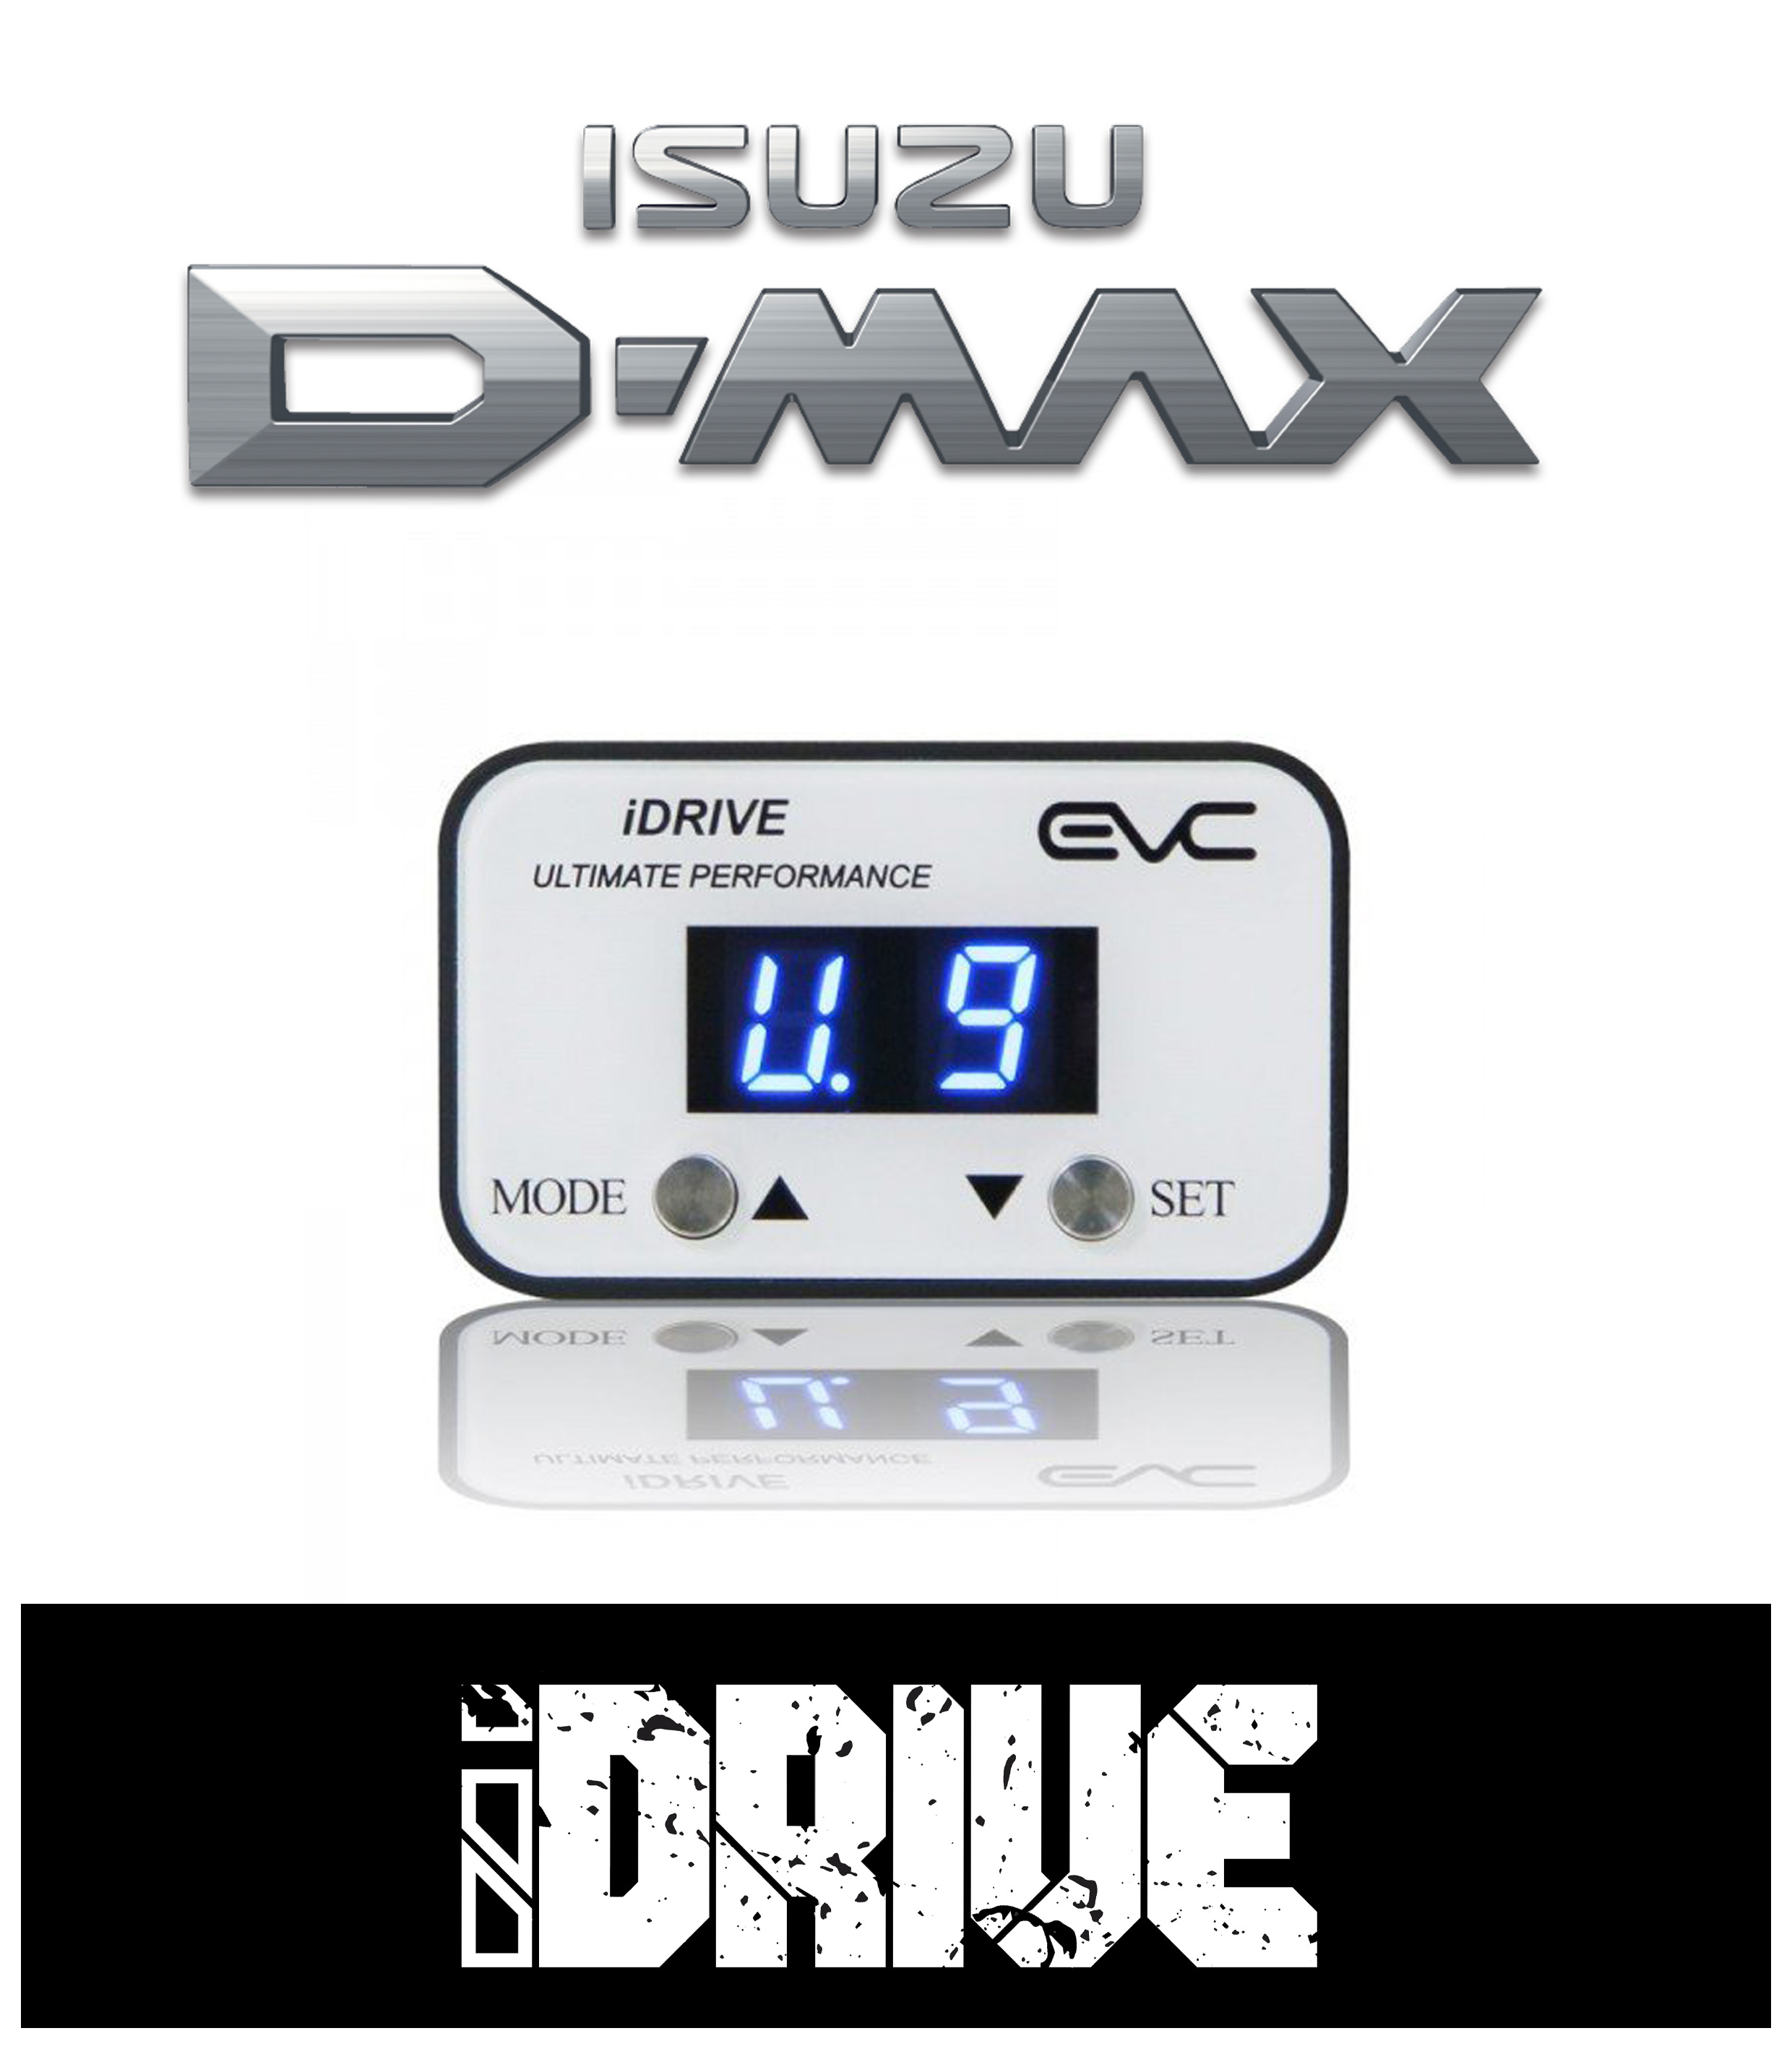 WEbsite_Dmax_iDRIVE_Thumbnail_edited-1.jpg